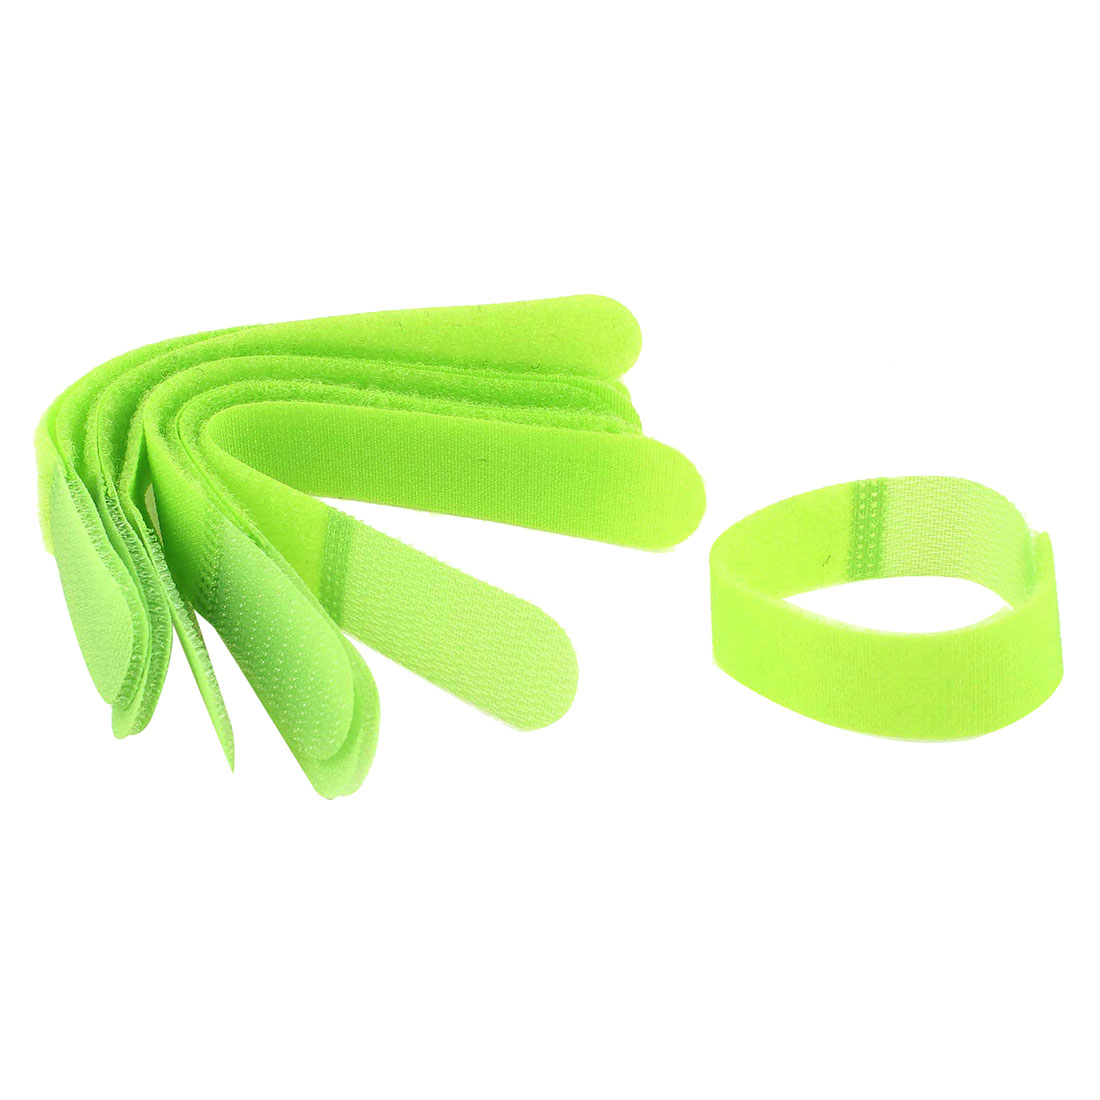 10 Pcs Detachable Fastener Hook Loop Tie Strap Cable Organizer Green